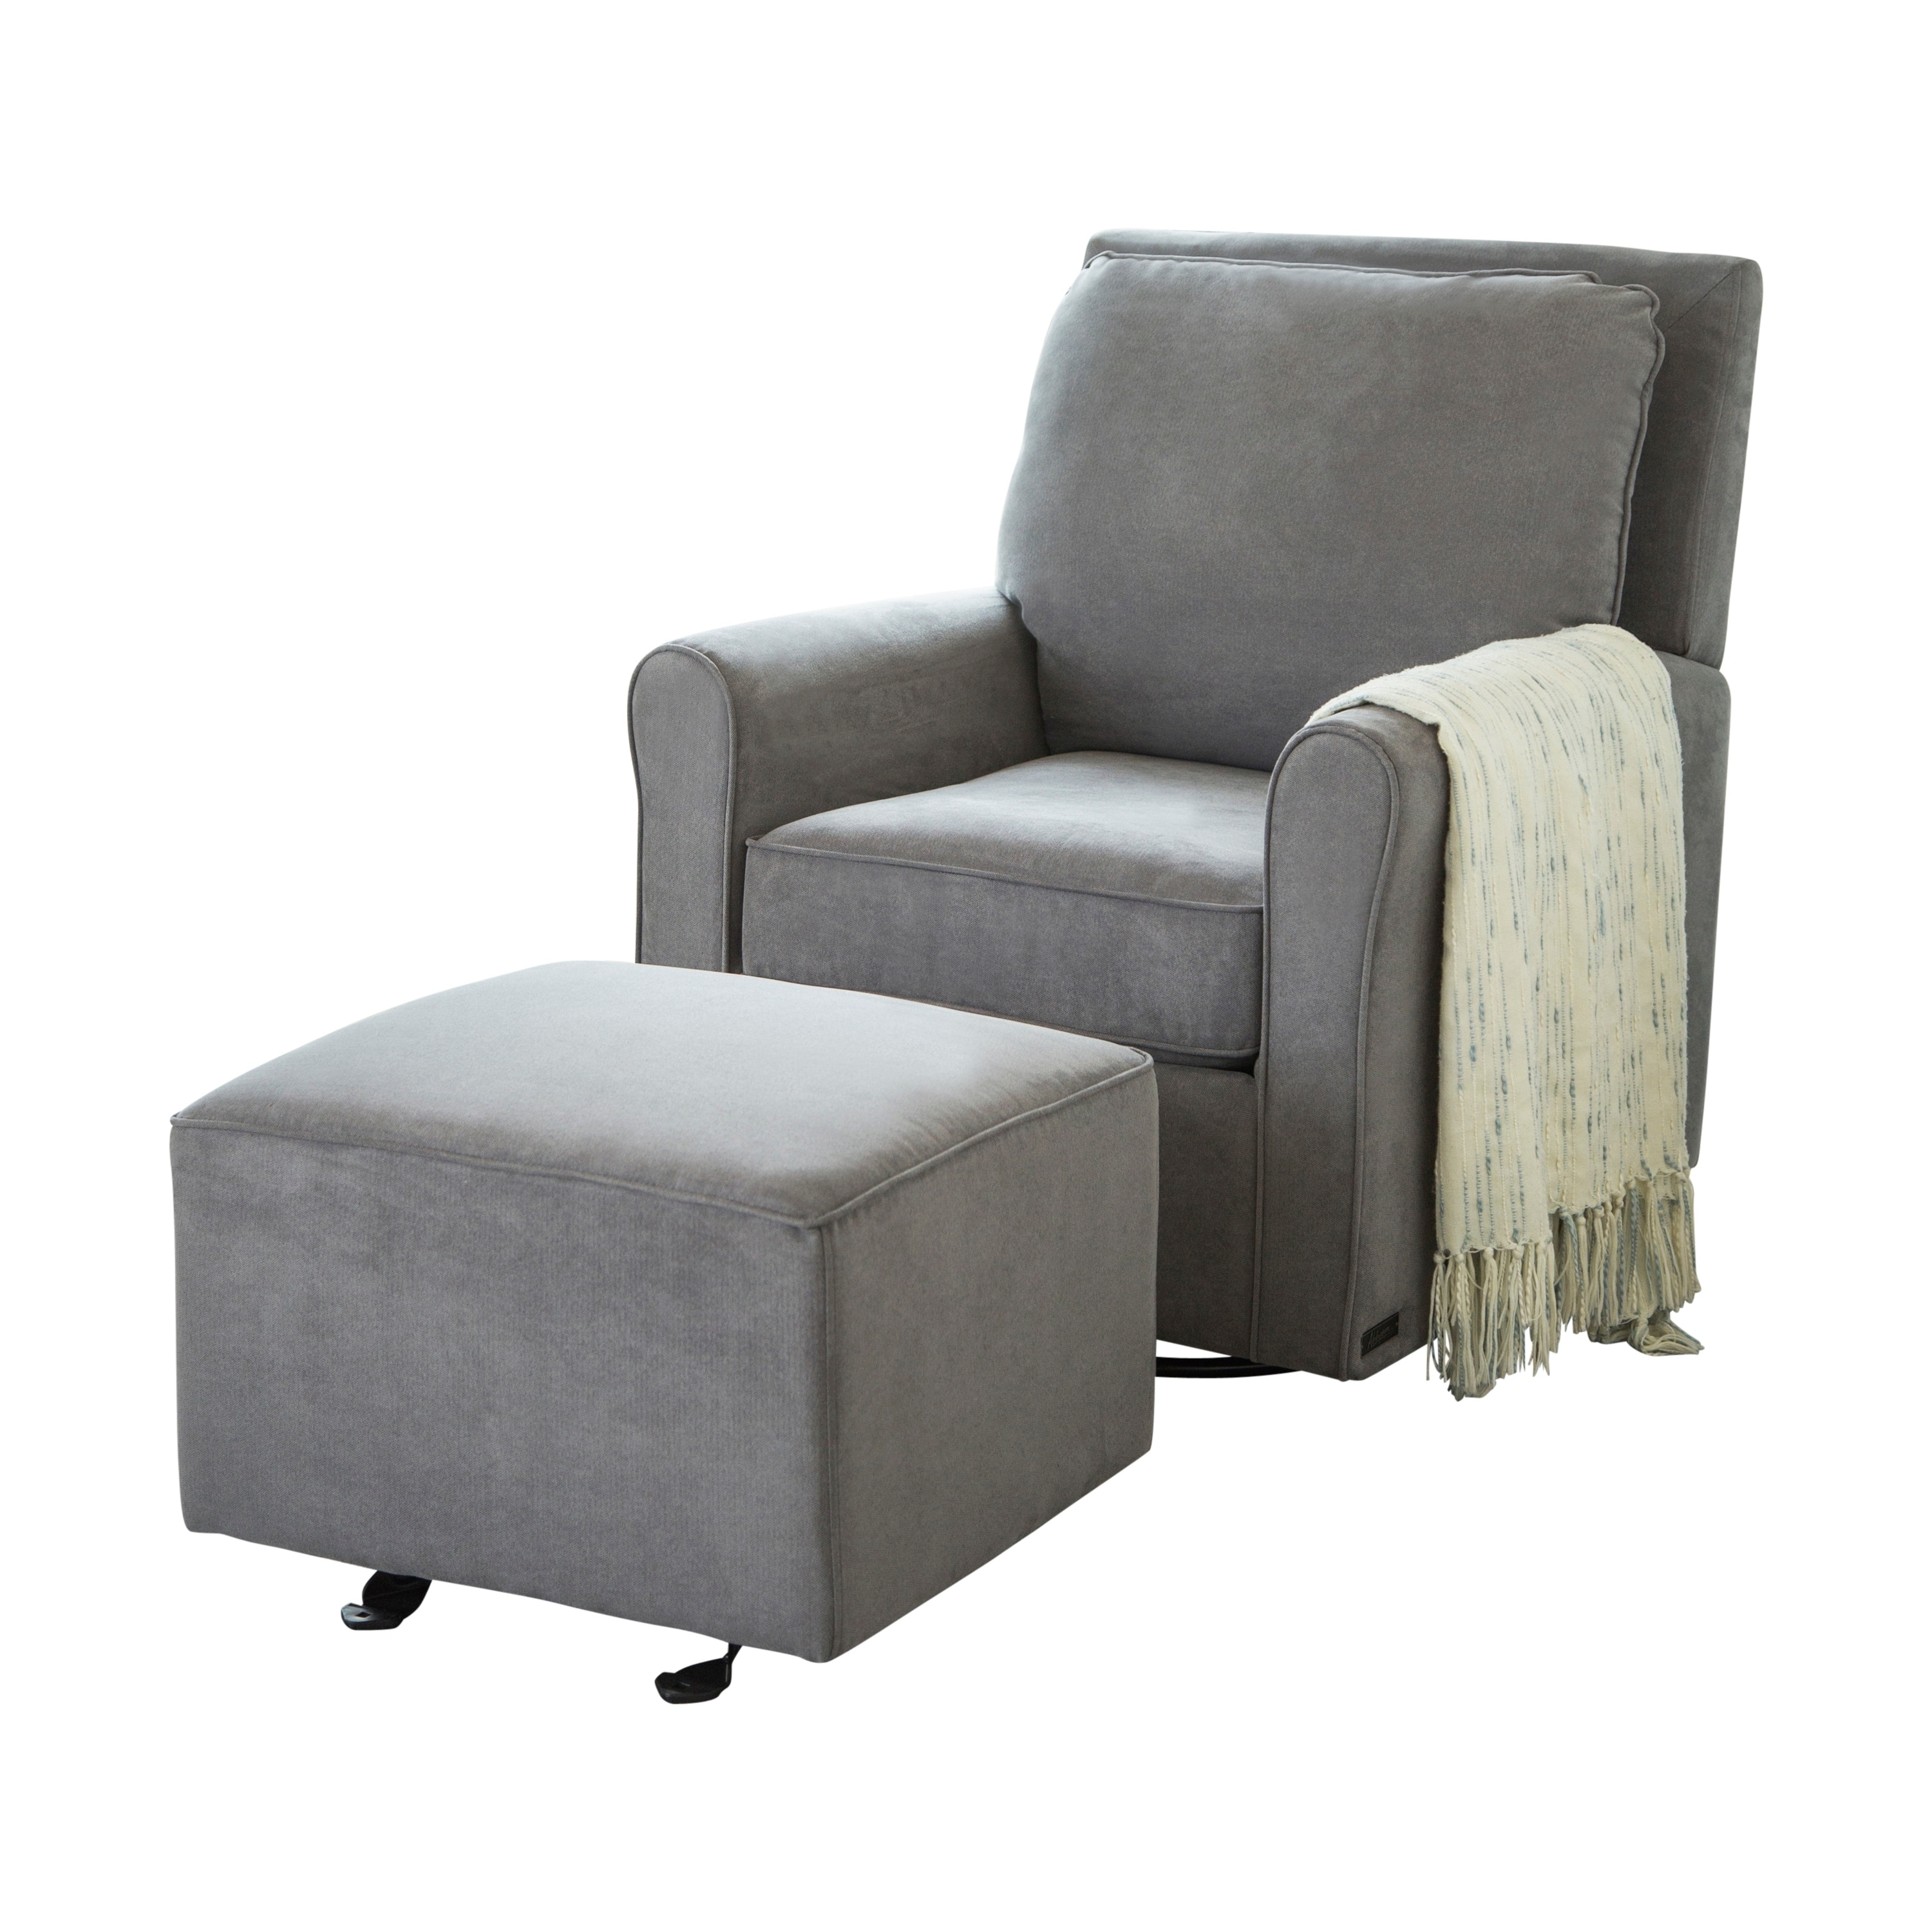 Abbyson Shiloh Fabric Gliding Chair And Ottoman On Free Shipping Today 16692966